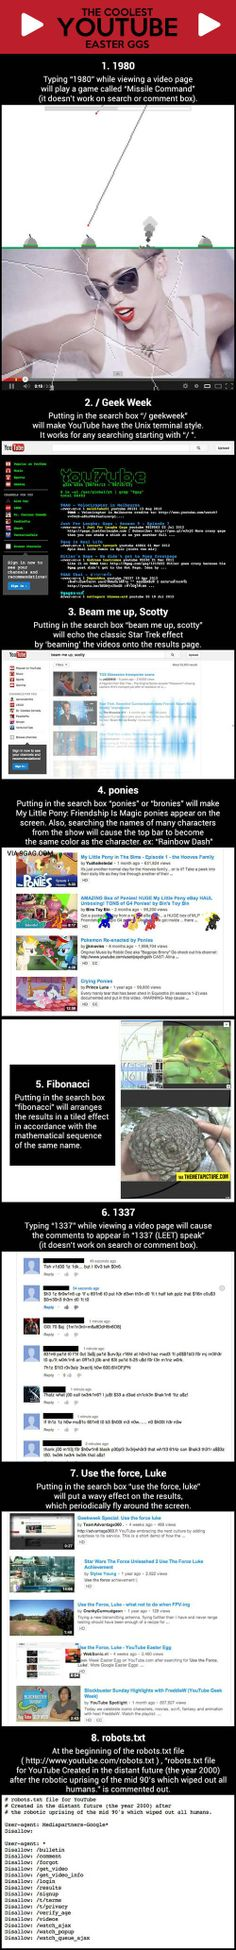 The Coolest YouTube Easter Eggs…